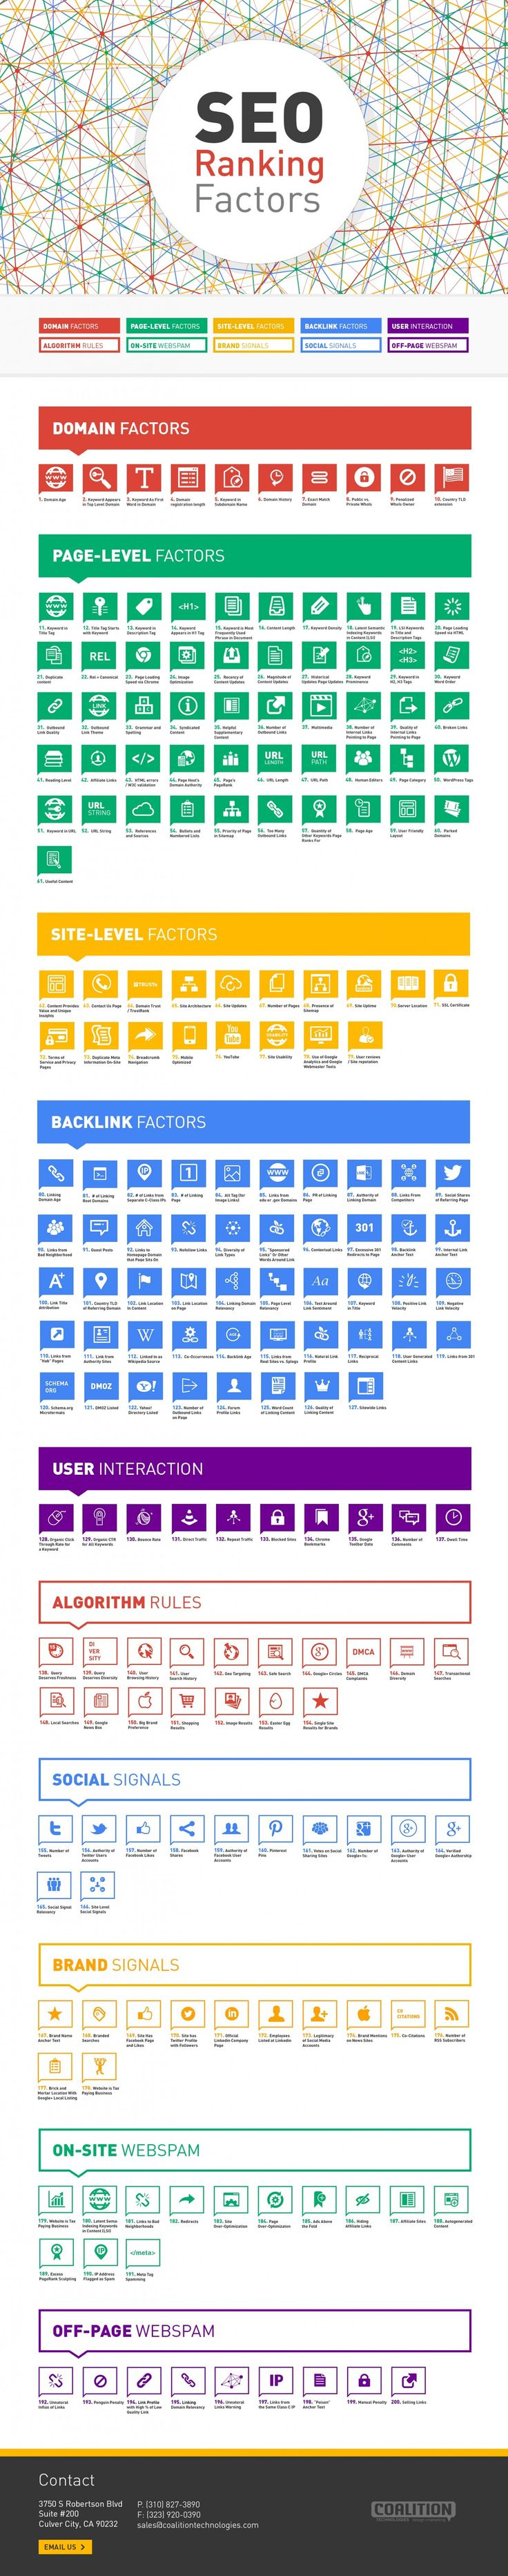 200 SEO Ranking Factors http://www.helpmequitthe9to5.com #SEO search engine optimization tips and tricks #infographic  #RePin by AT Social Media Marketing - Pinterest Marketing Specialists ATSocialMedia.co.uk